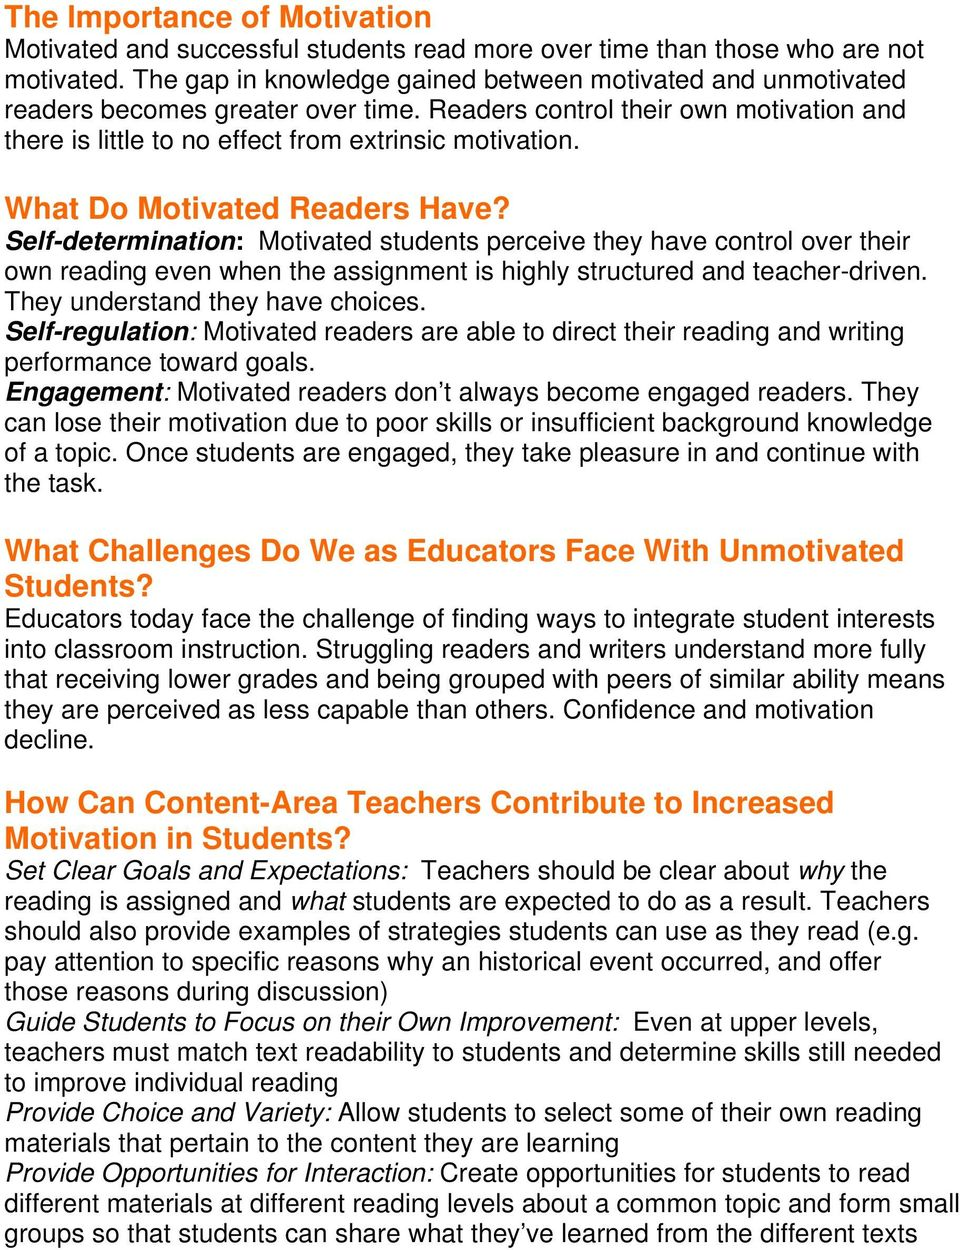 What Do Motivated Readers Have? Self-determination: Motivated students perceive they have control over their own reading even when the assignment is highly structured and teacher-driven.